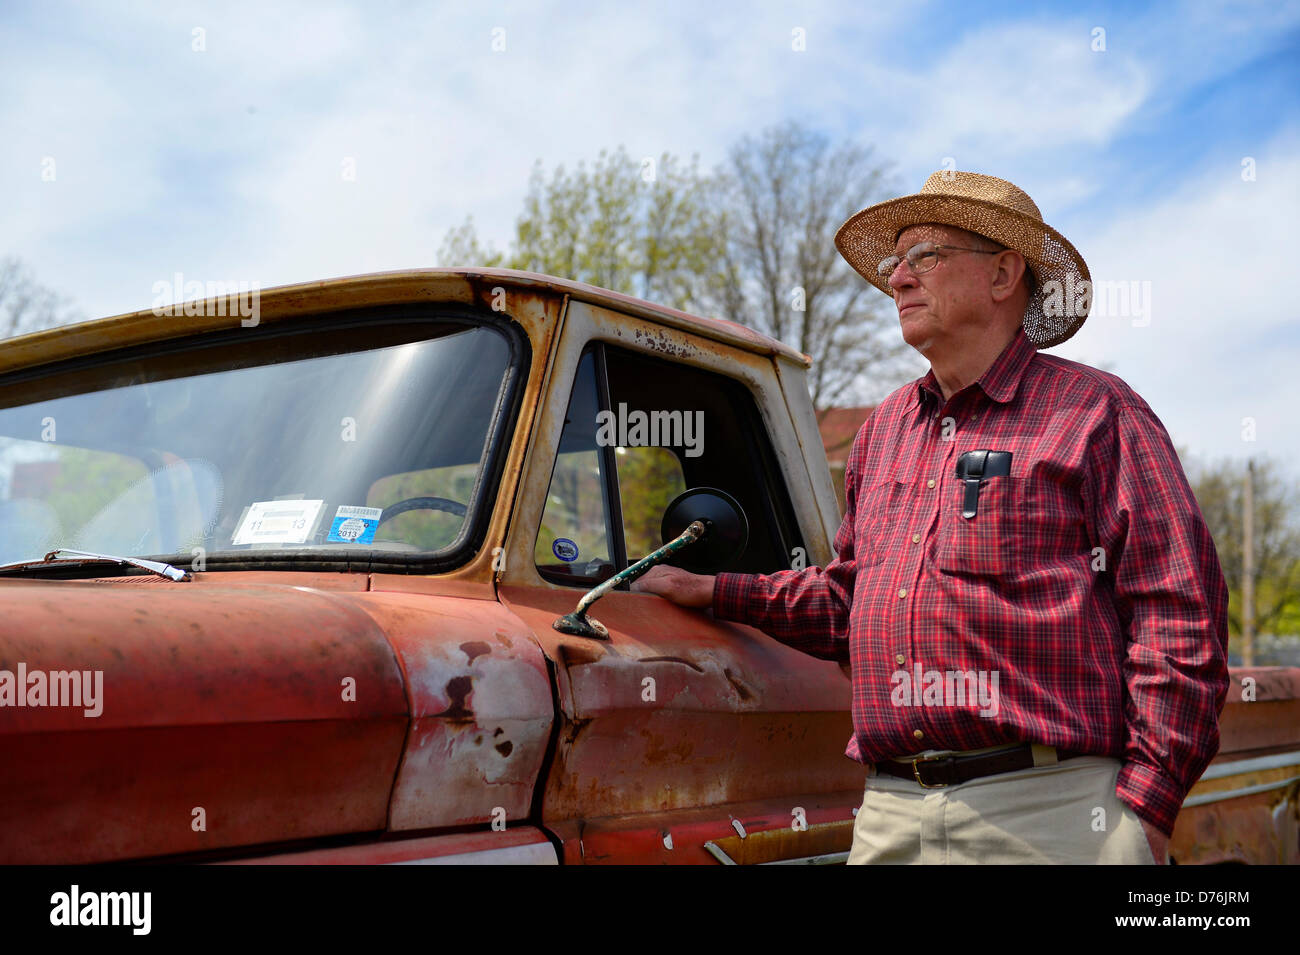 Floral Park, New York, U.S. April 28, 2013. PAUL GRAMLICH is standing next his red and white 1964 Chevrolet C-10 Stock Photo